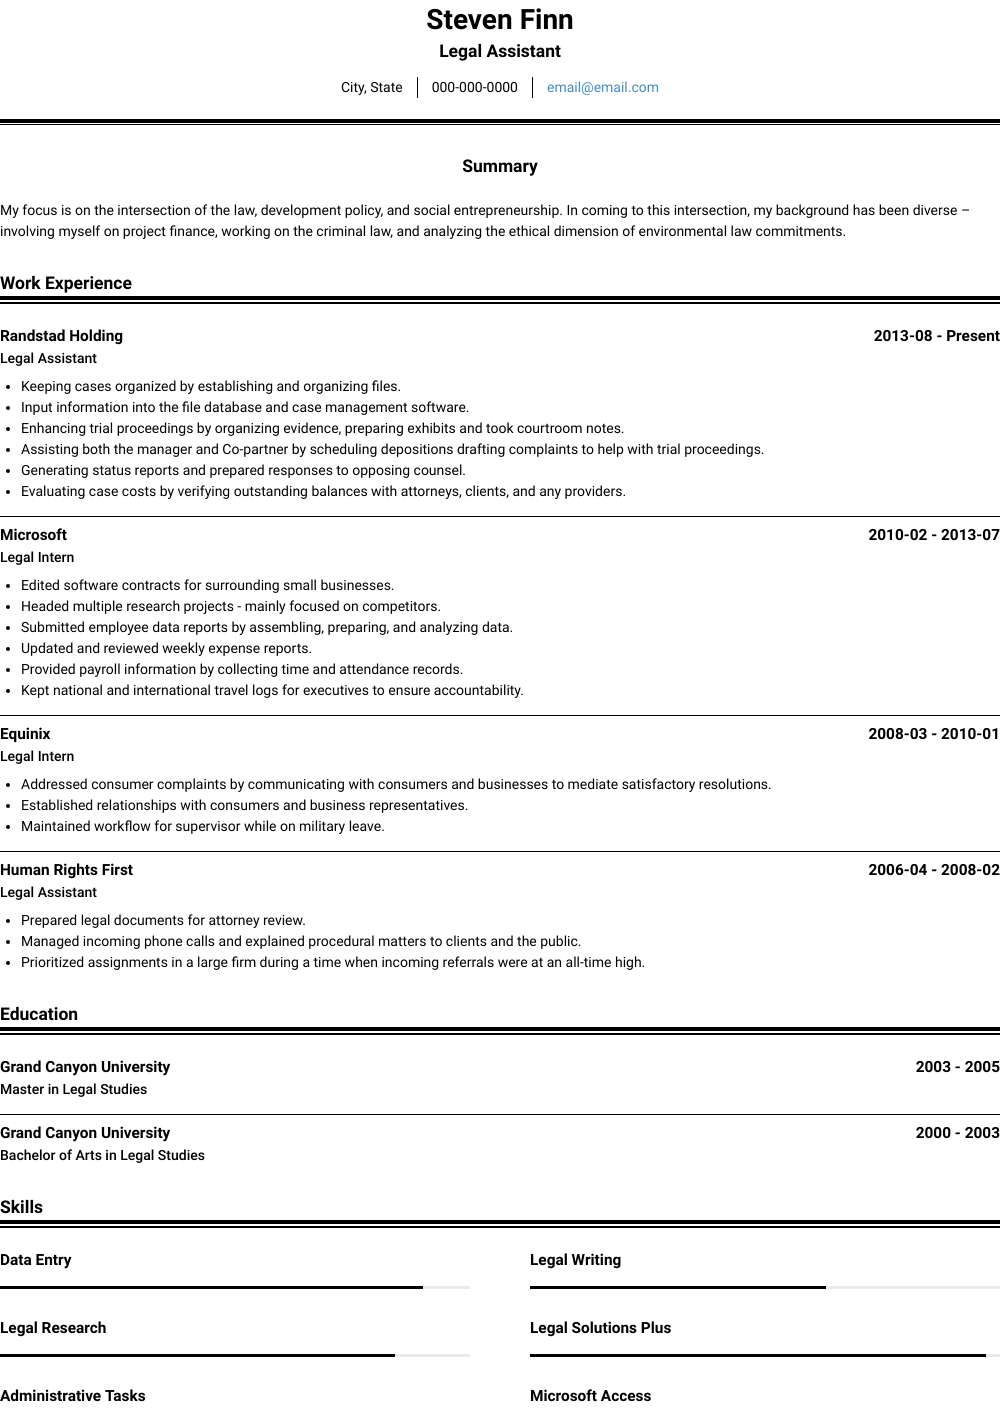 Legal Assistant Resume Sample and Template